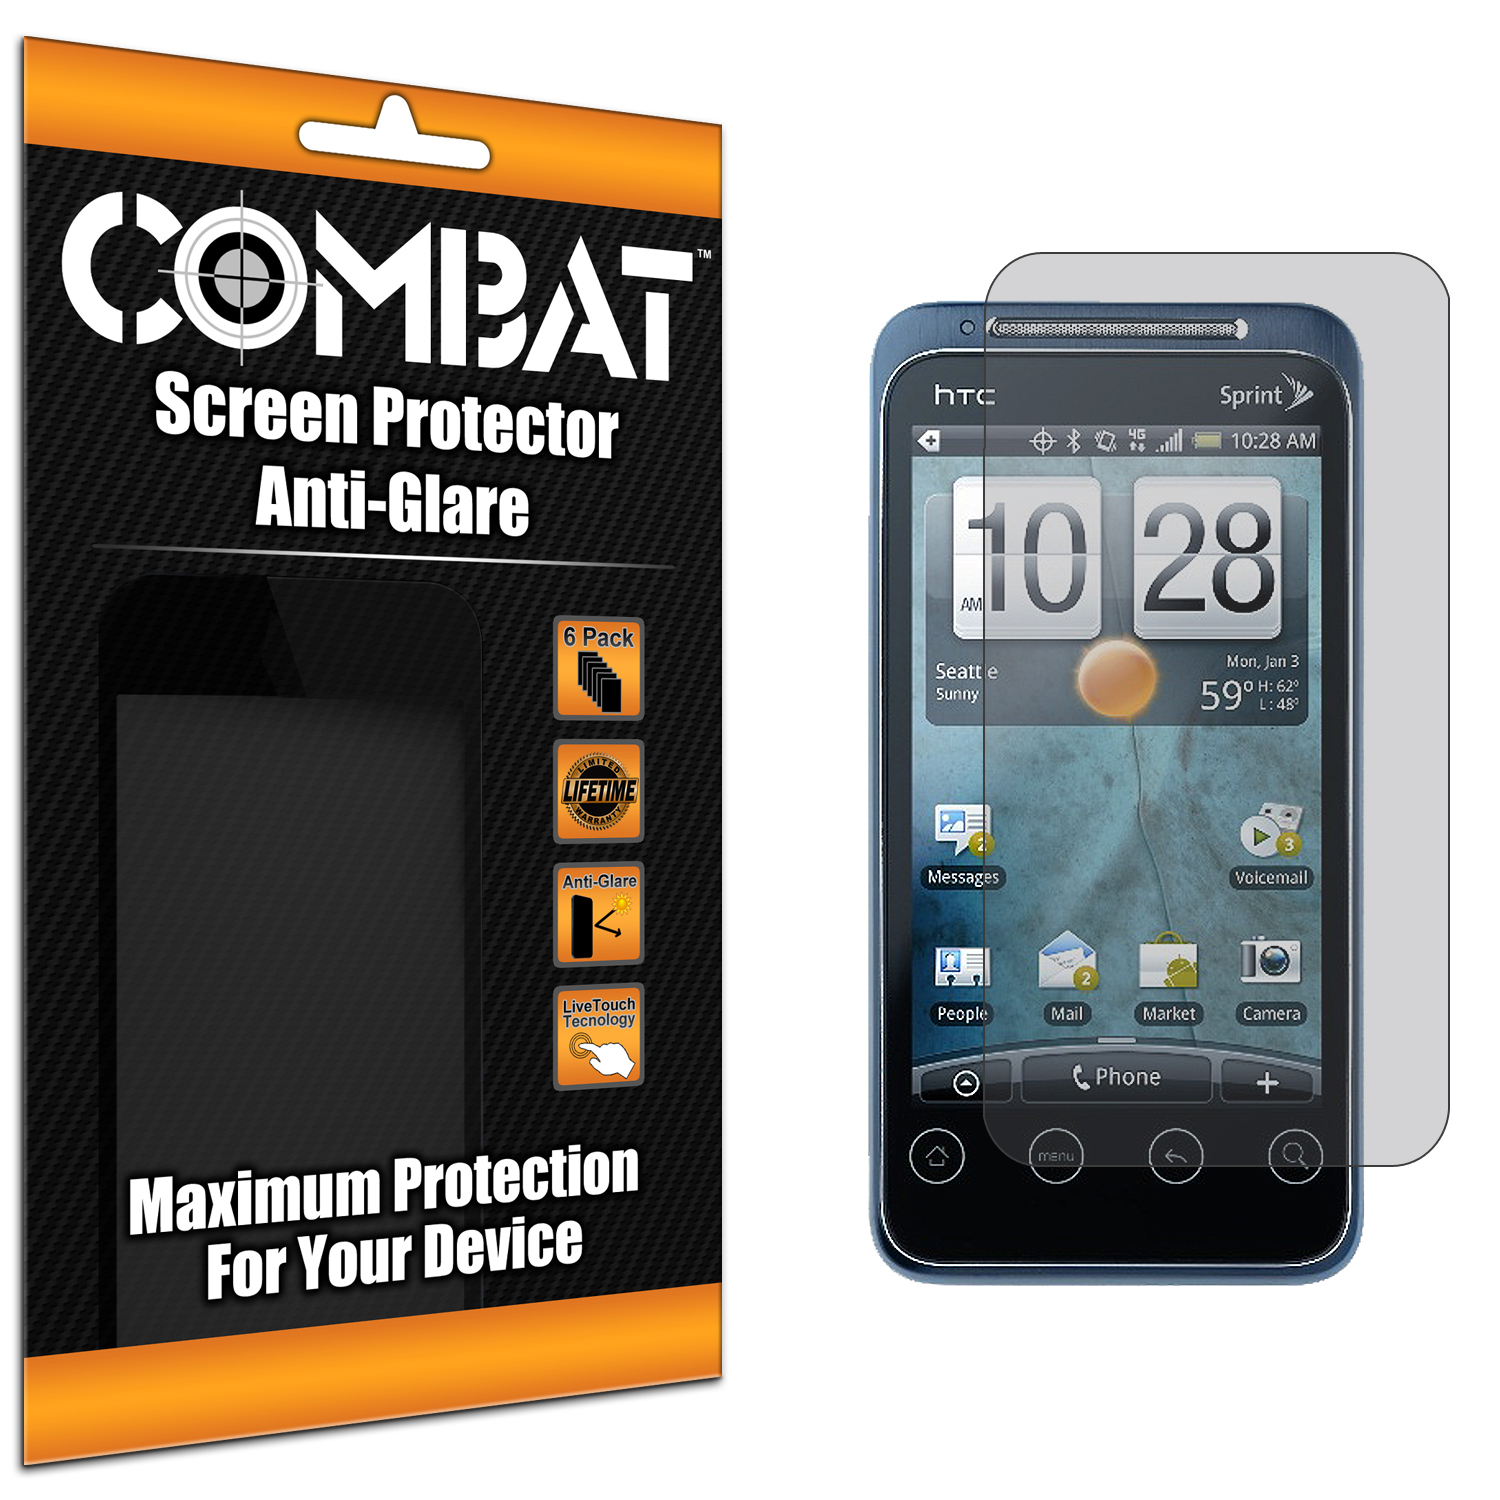 HTC EVO Shift 4G Combat 6 Pack Anti-Glare Matte Screen Protector